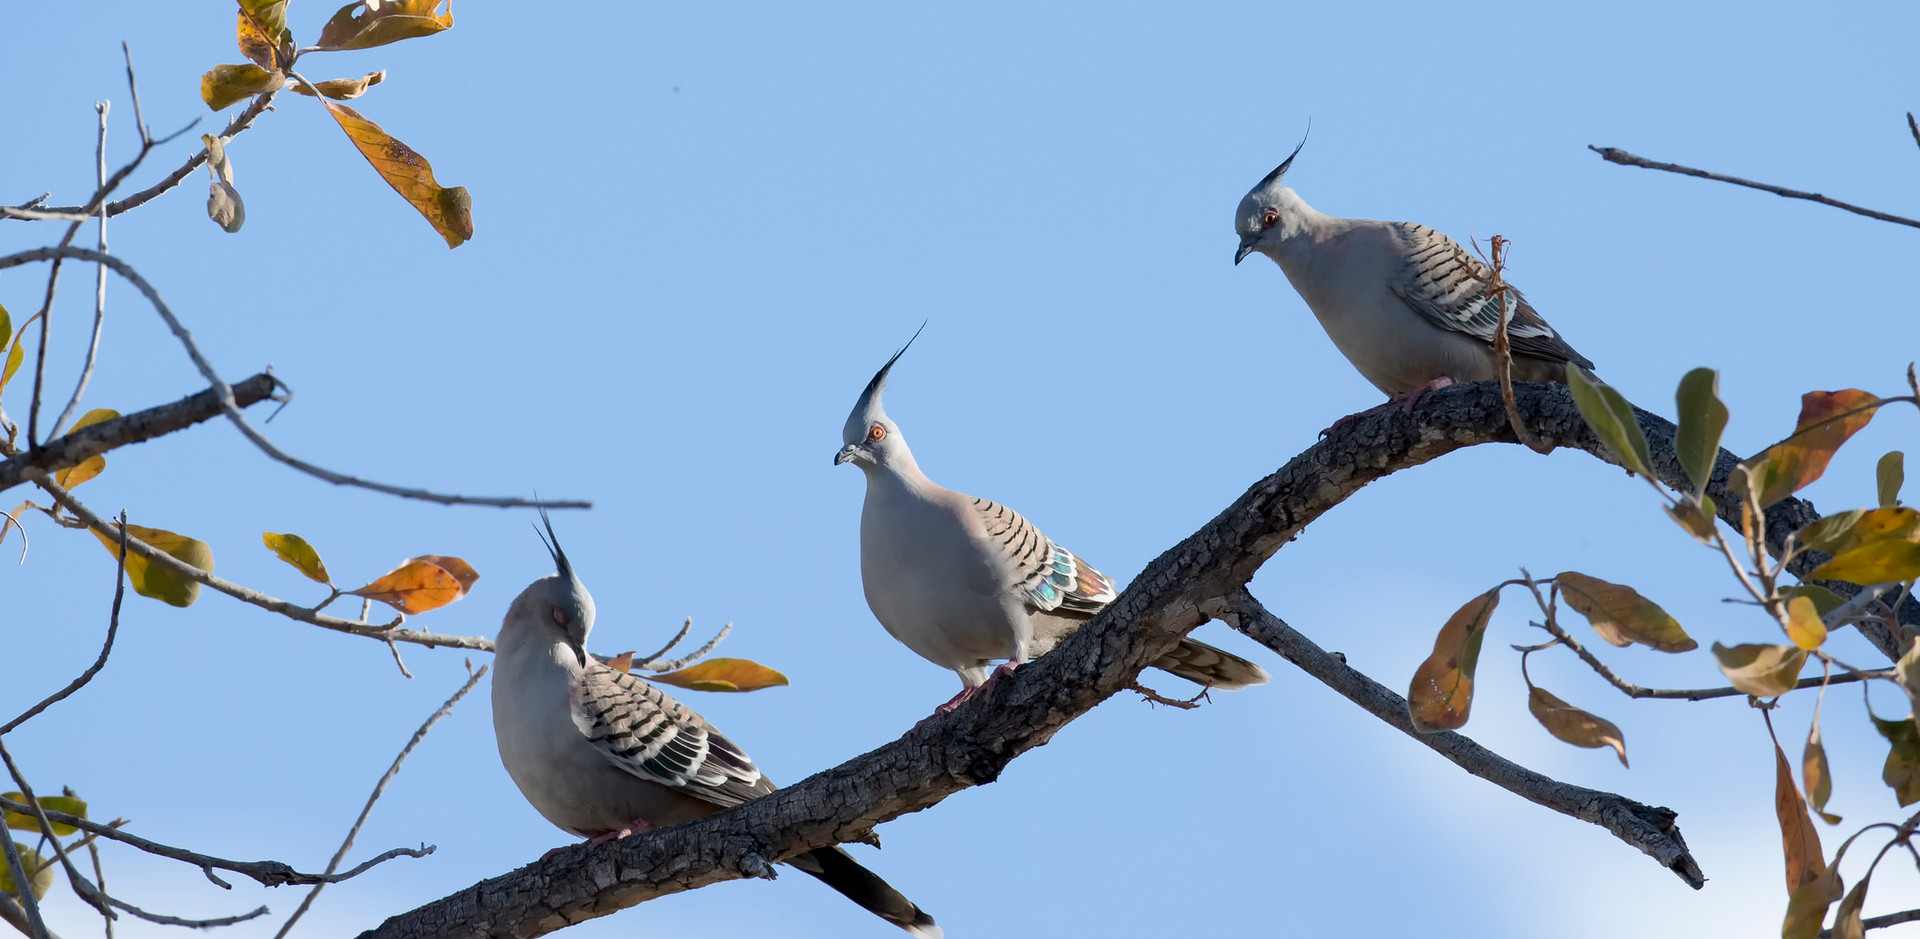 Three Crested Pigeons